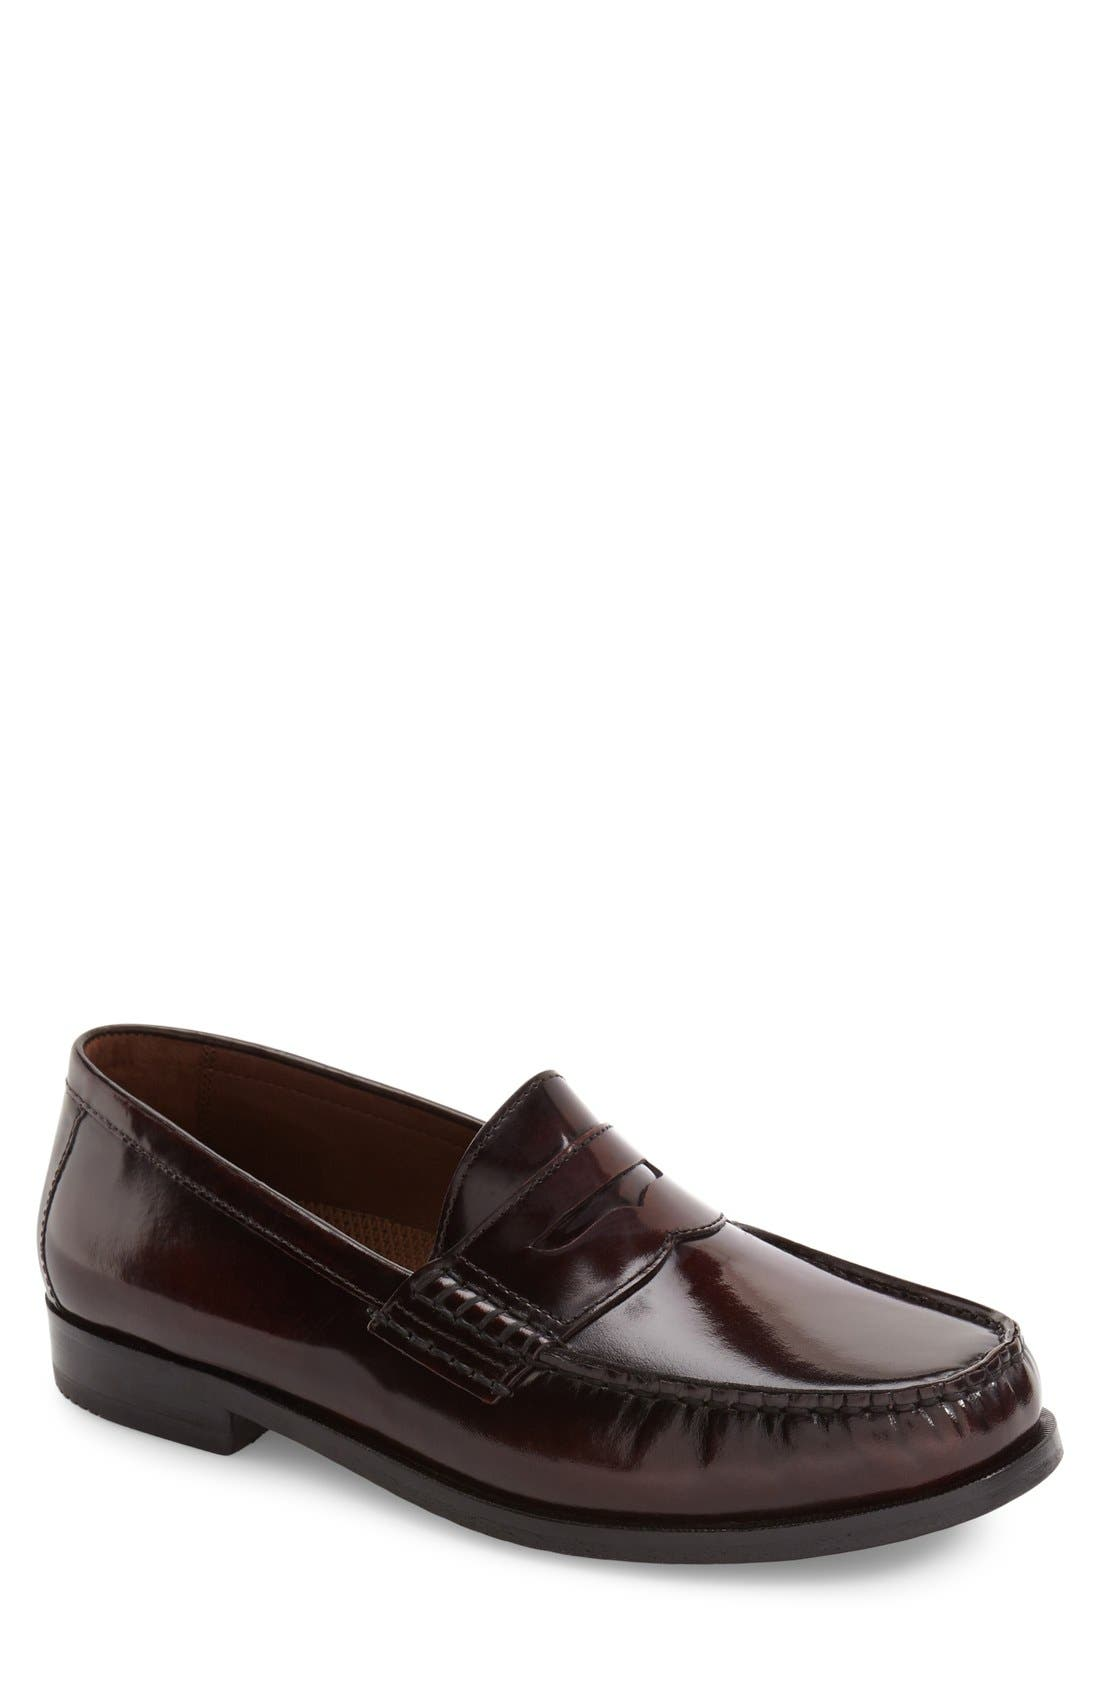 Pannell Penny Loafer,                         Main,                         color, Burgundy Leather